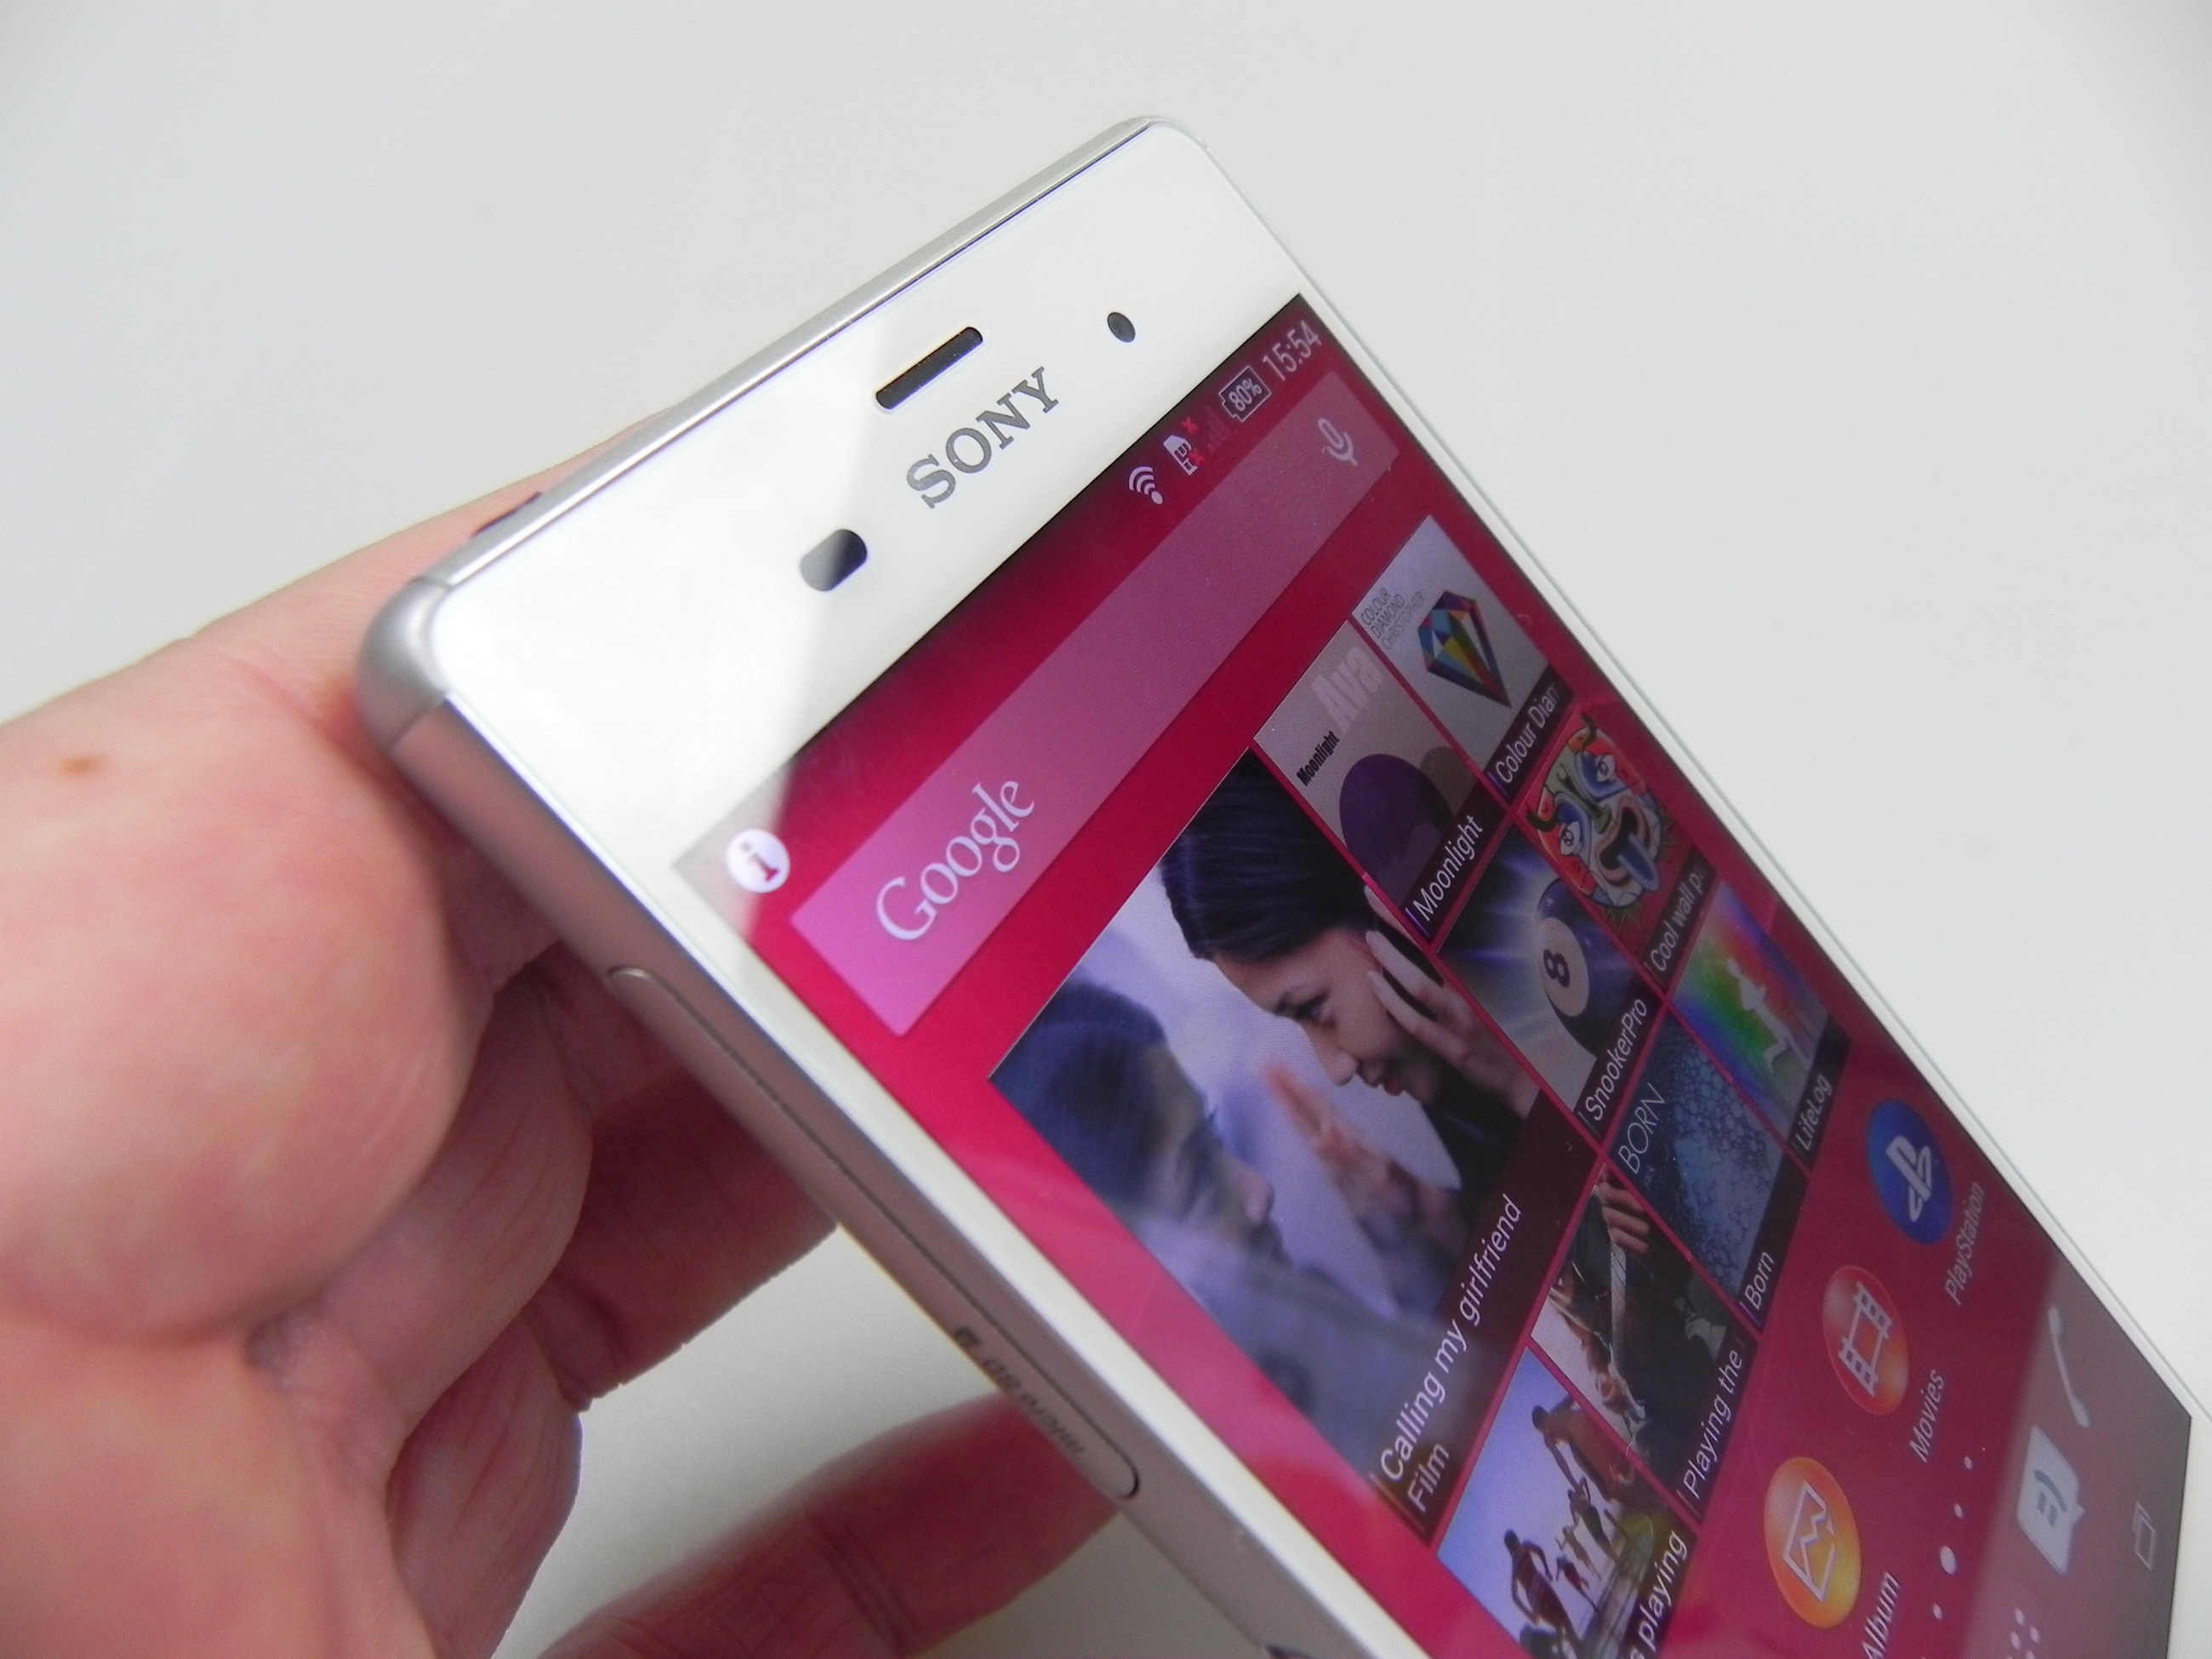 Sony Xperia Z3 Review (Dual SIM): Good Multimedia Features ...